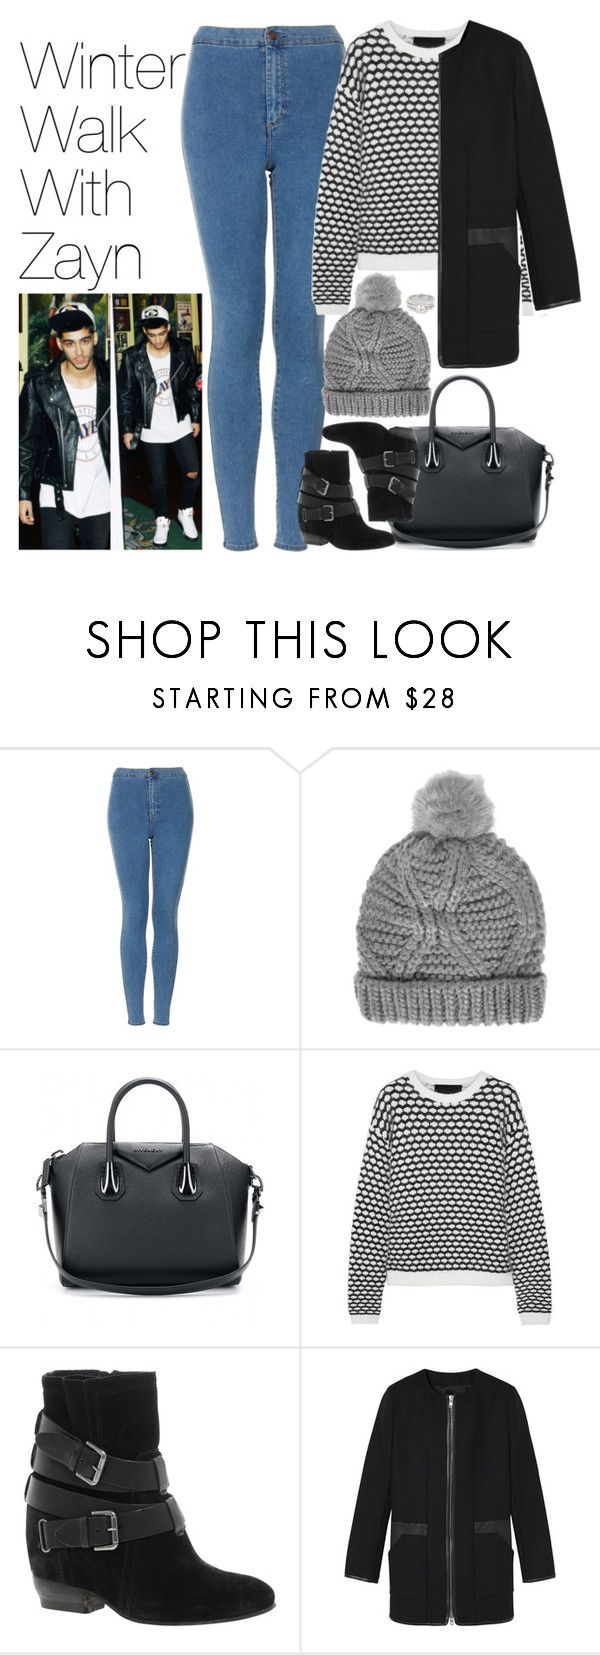 """Winter Walk with Zayn"" by onedirectionimagineoutfits99 ❤ liked on Polyvore featuring Topshop, Givenchy, Jay Ahr, Dune and Jon Richard"